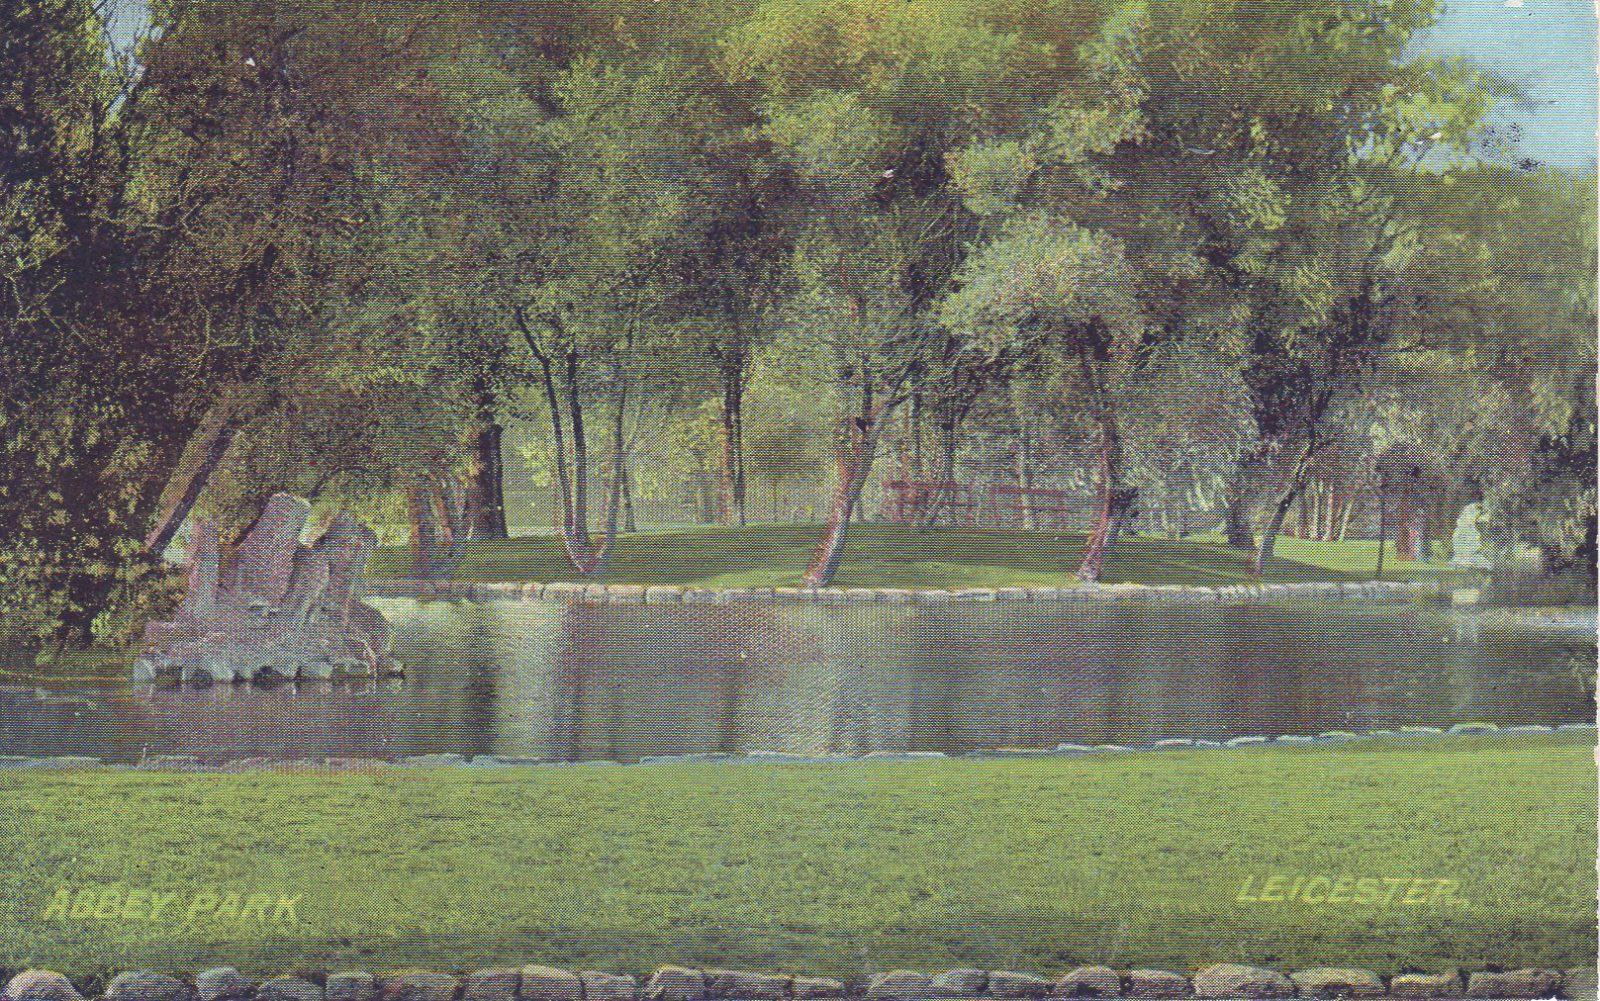 Abbey Park, Leicester. Undated: The lake (File:1575)